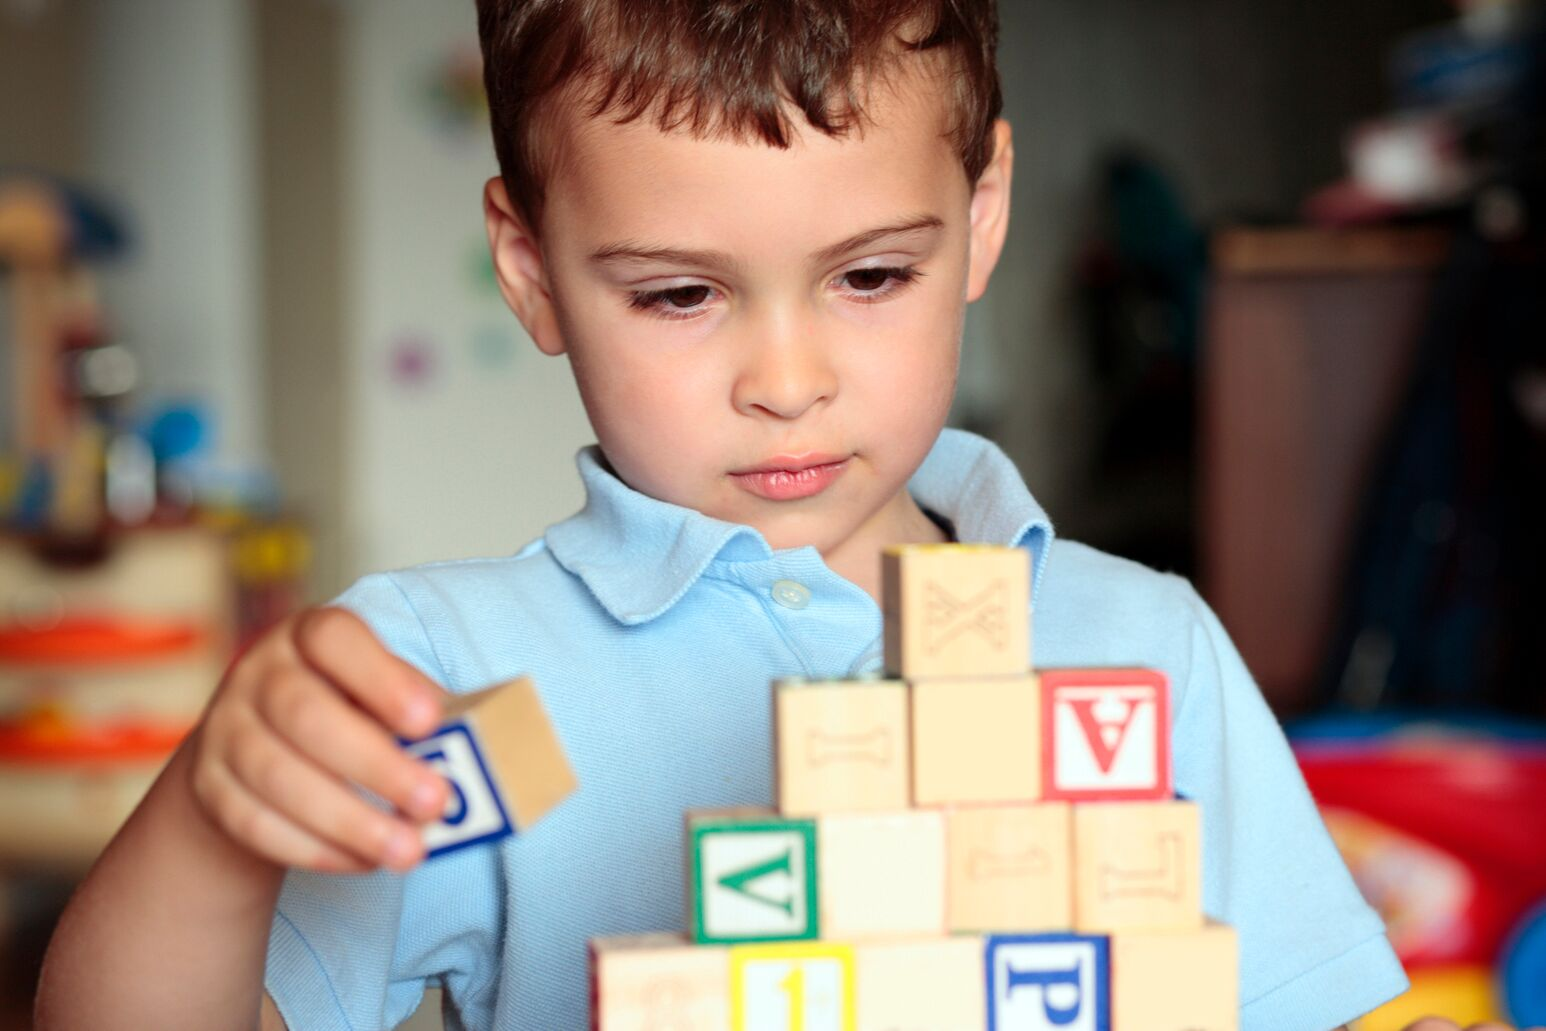 A boy plays with lettered blocks